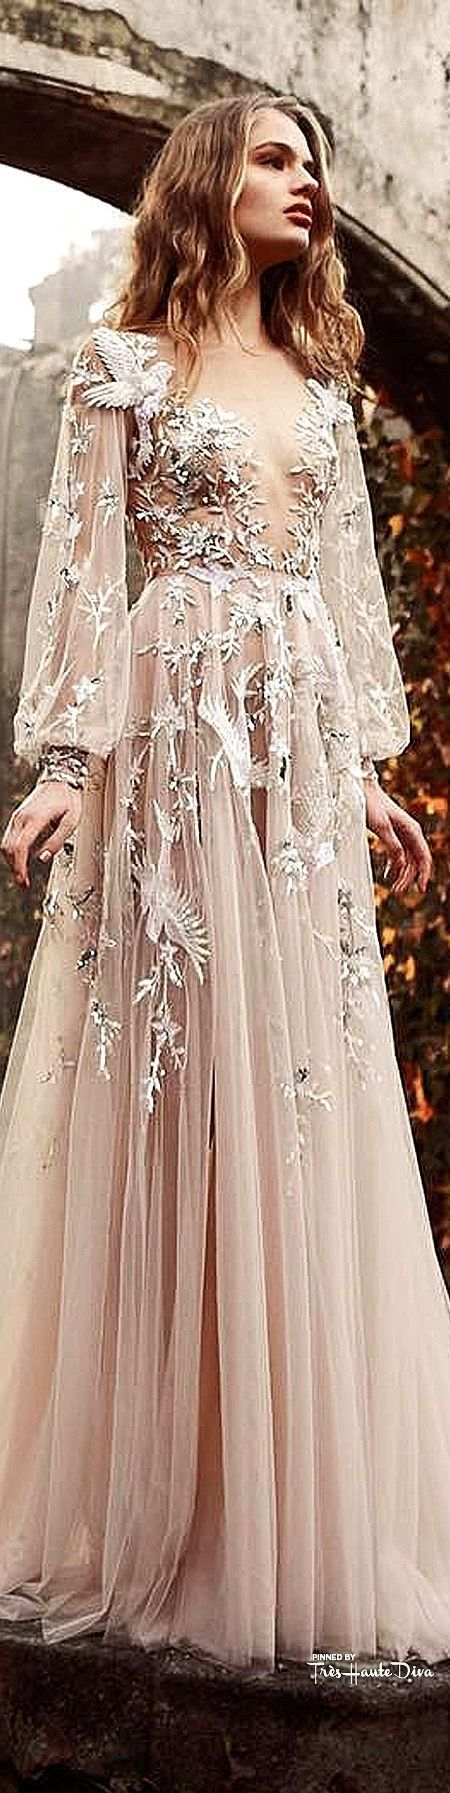 Paolo Sebastian Couture SS15 Gown #paolo